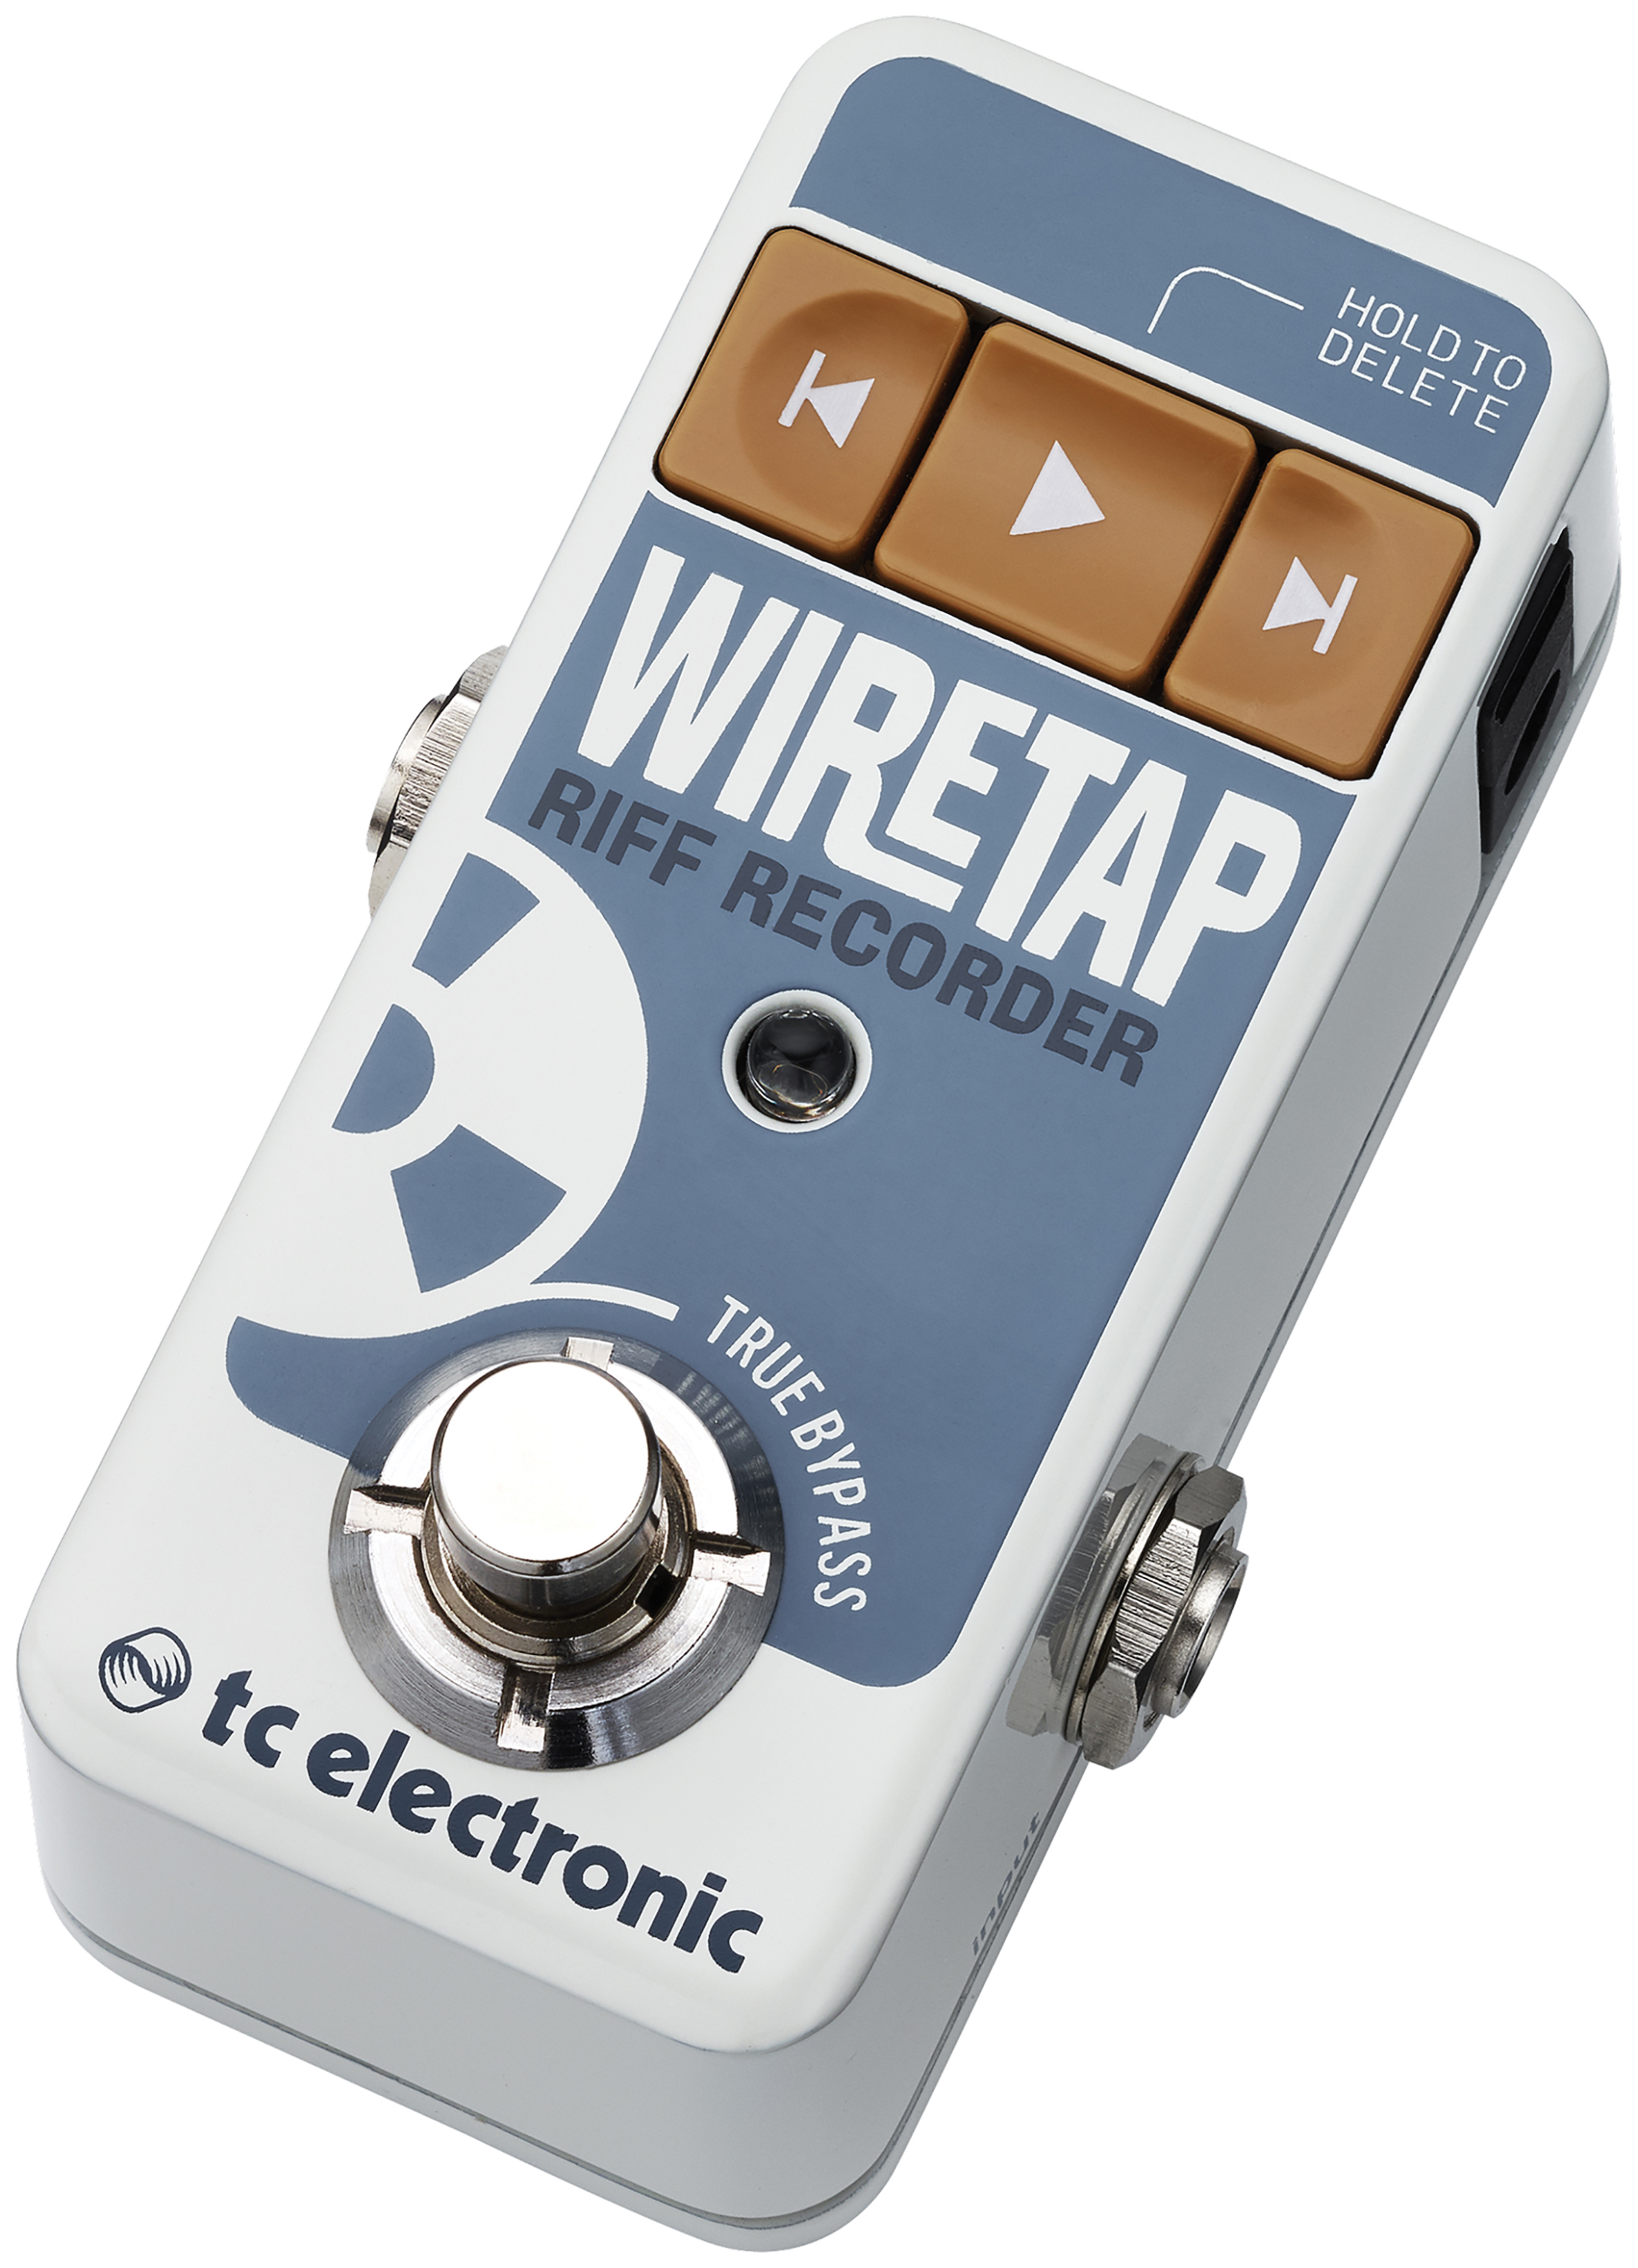 TC Electronic Wiretap Riff Recorder - 8 hours of CD quality record time. Get the riffs down and use them later